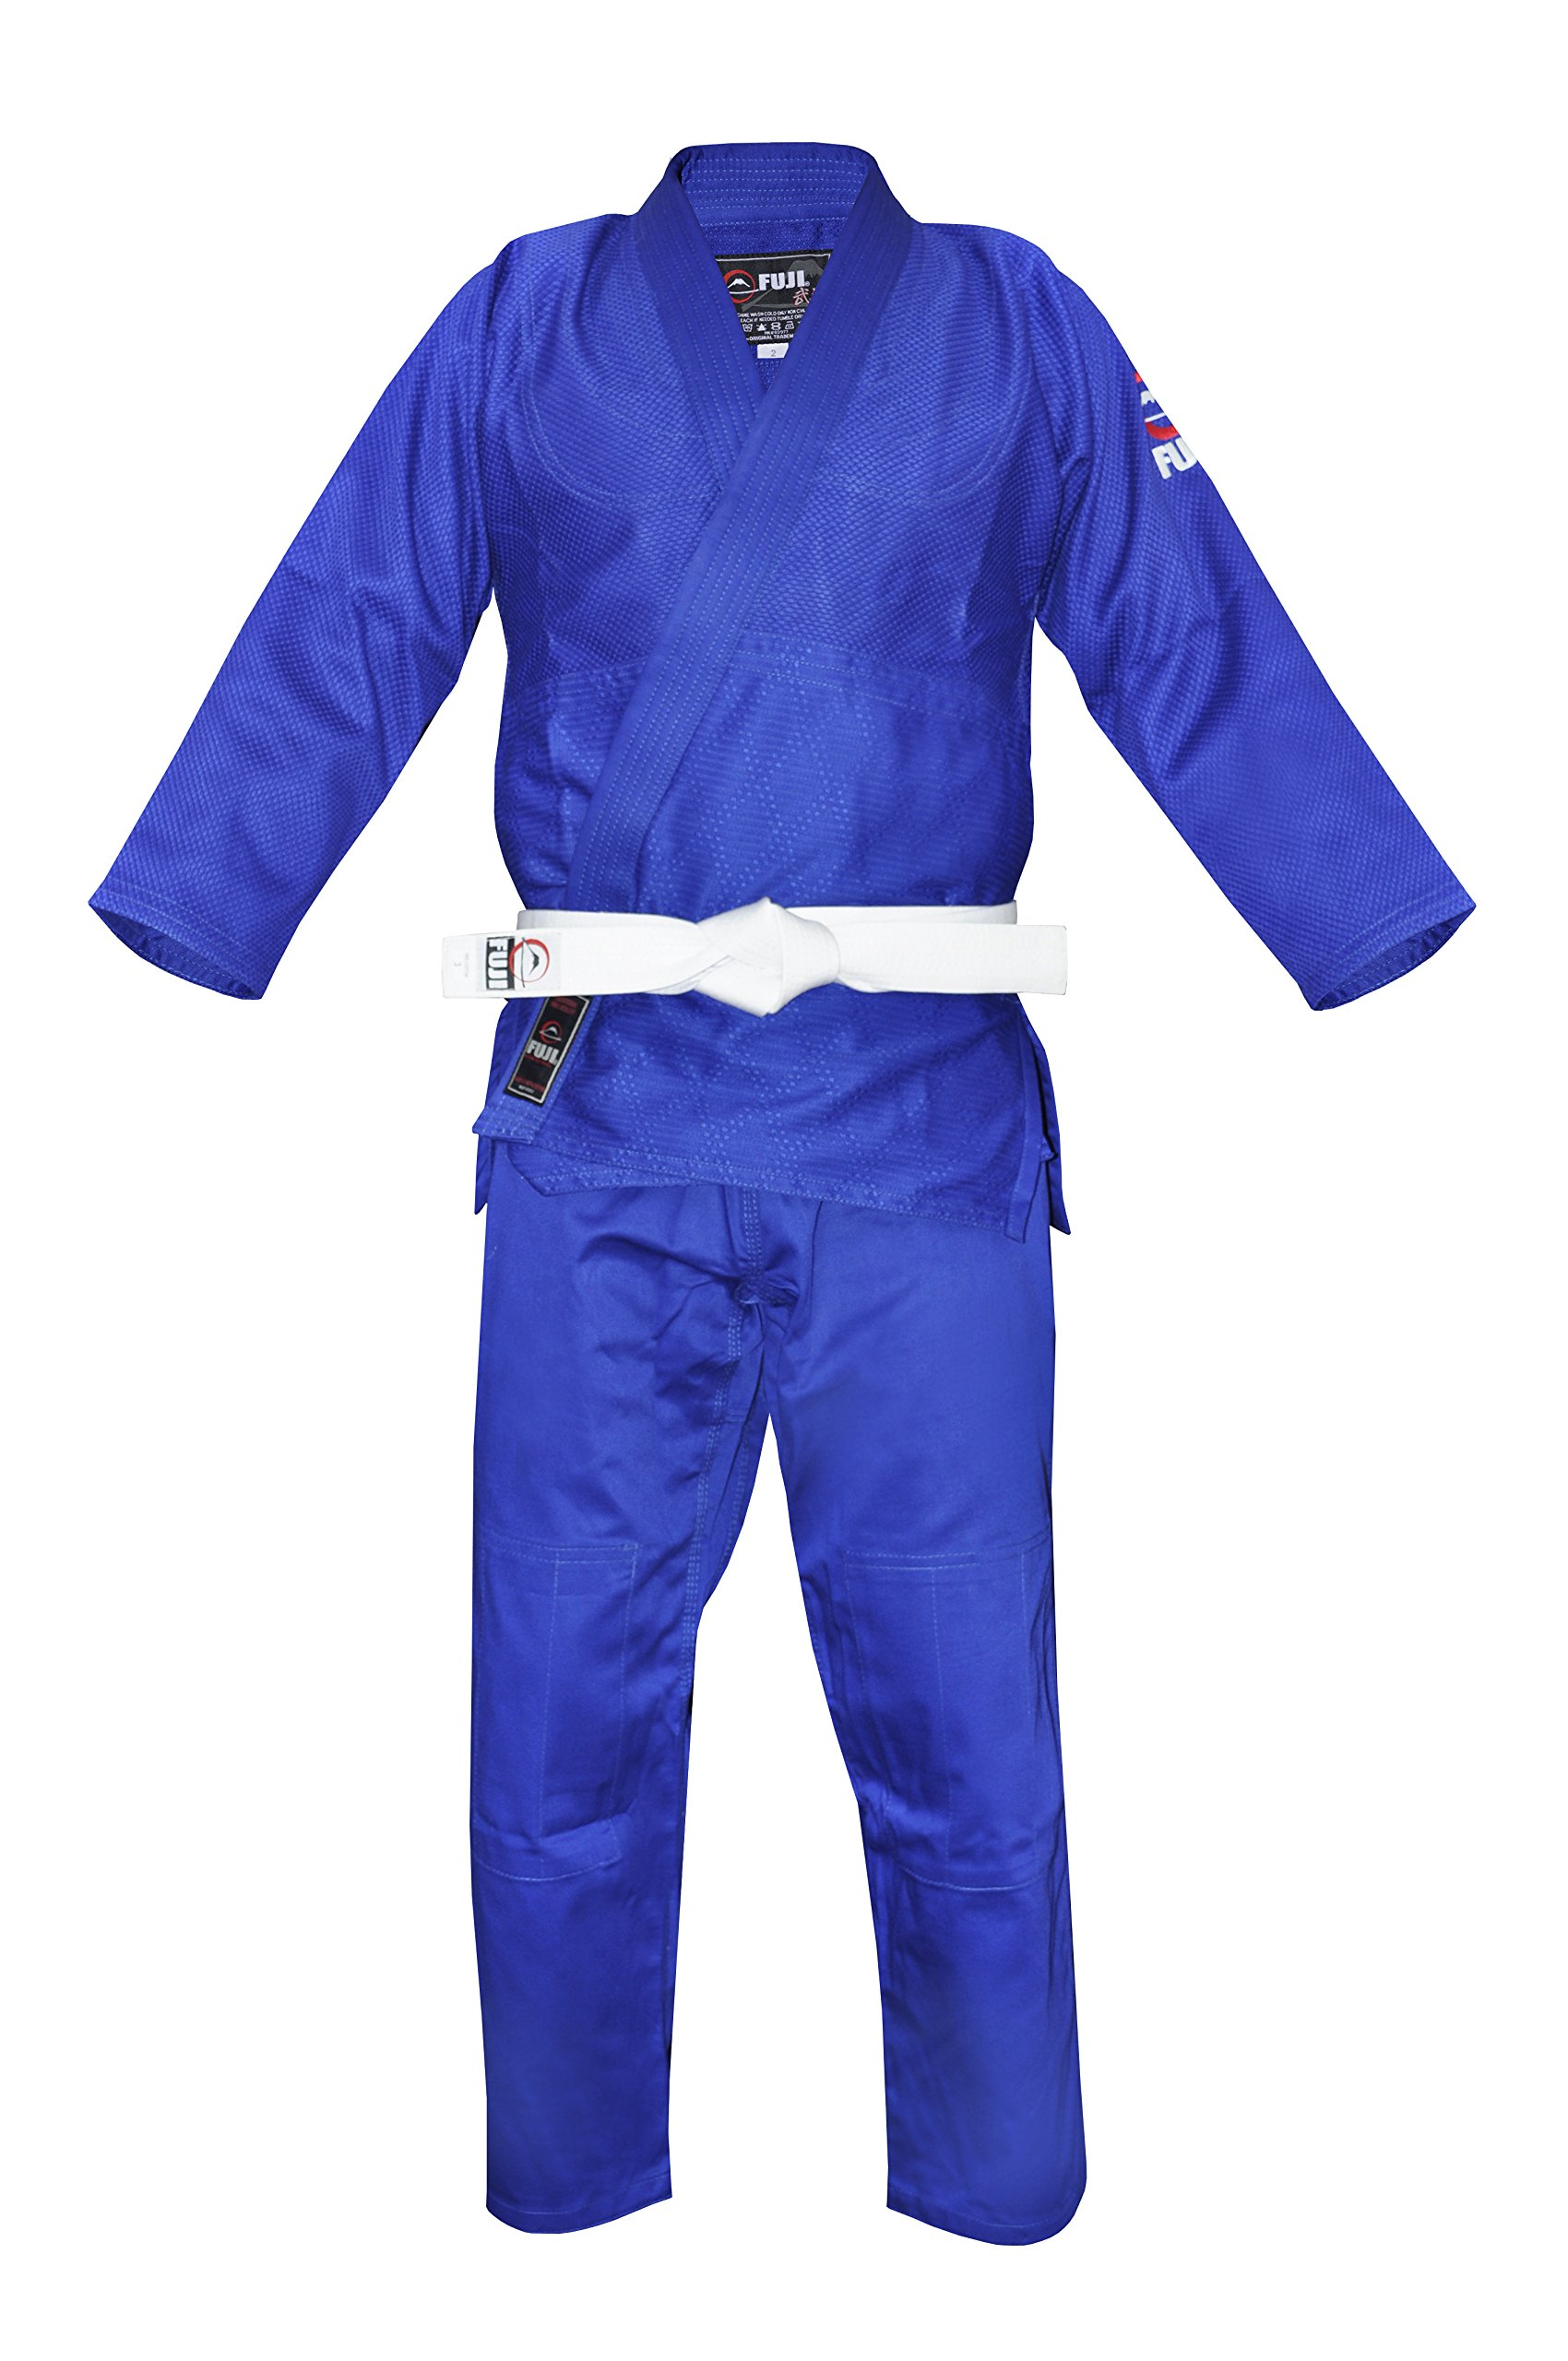 FUJI Single Weave Judo GI, Blue, 4 by Fuji